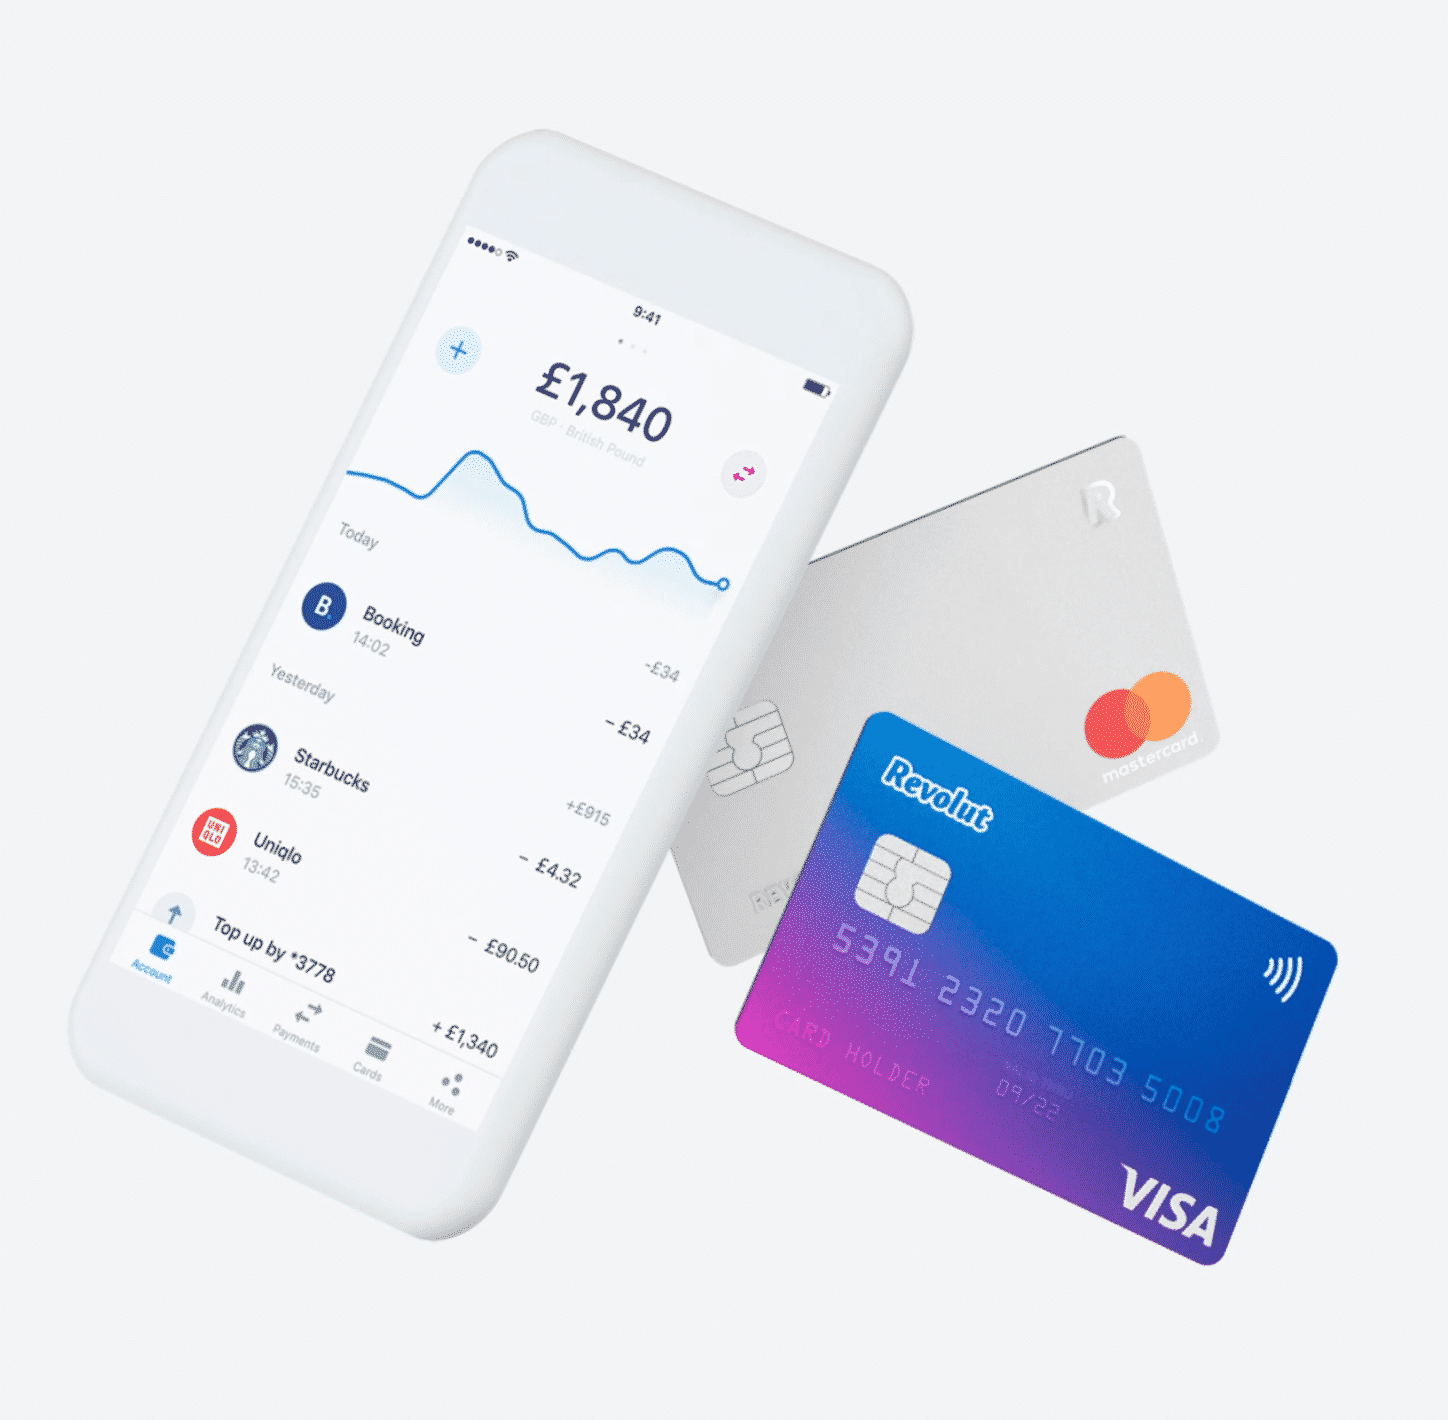 UK-based Banking App Revolut Inks Partnership with Visa